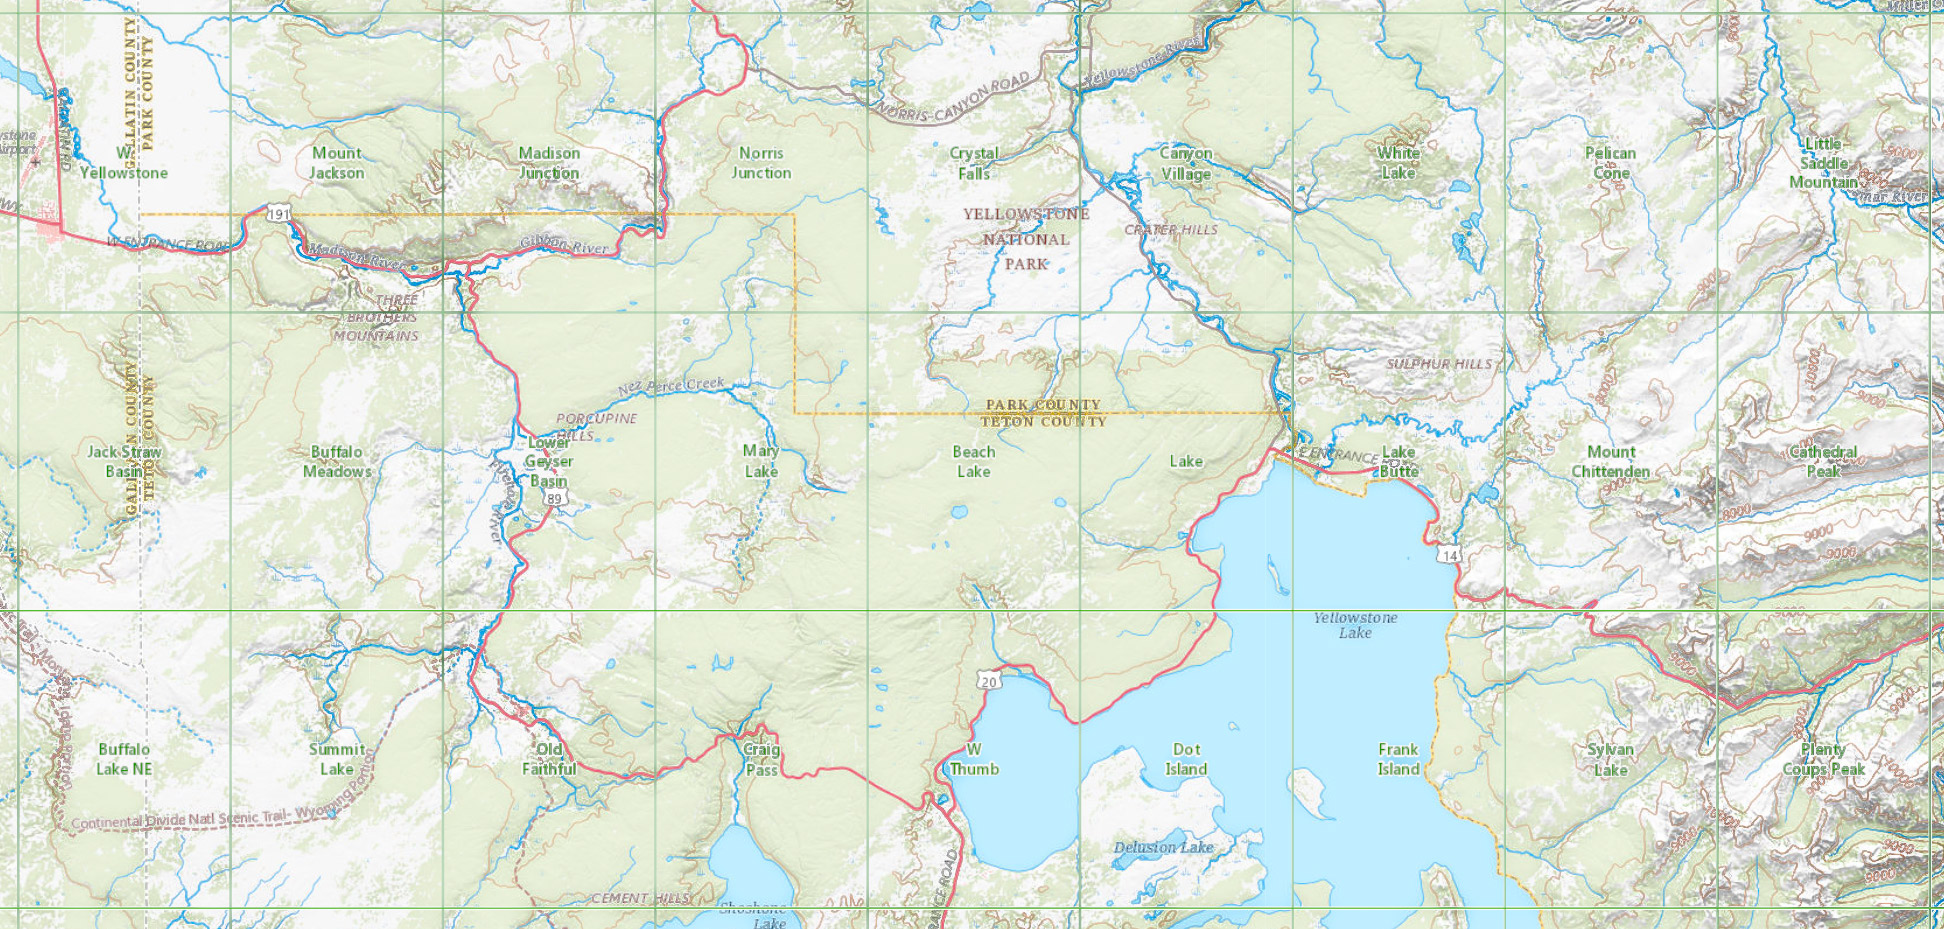 Yellowstone National Park Maps and Directions